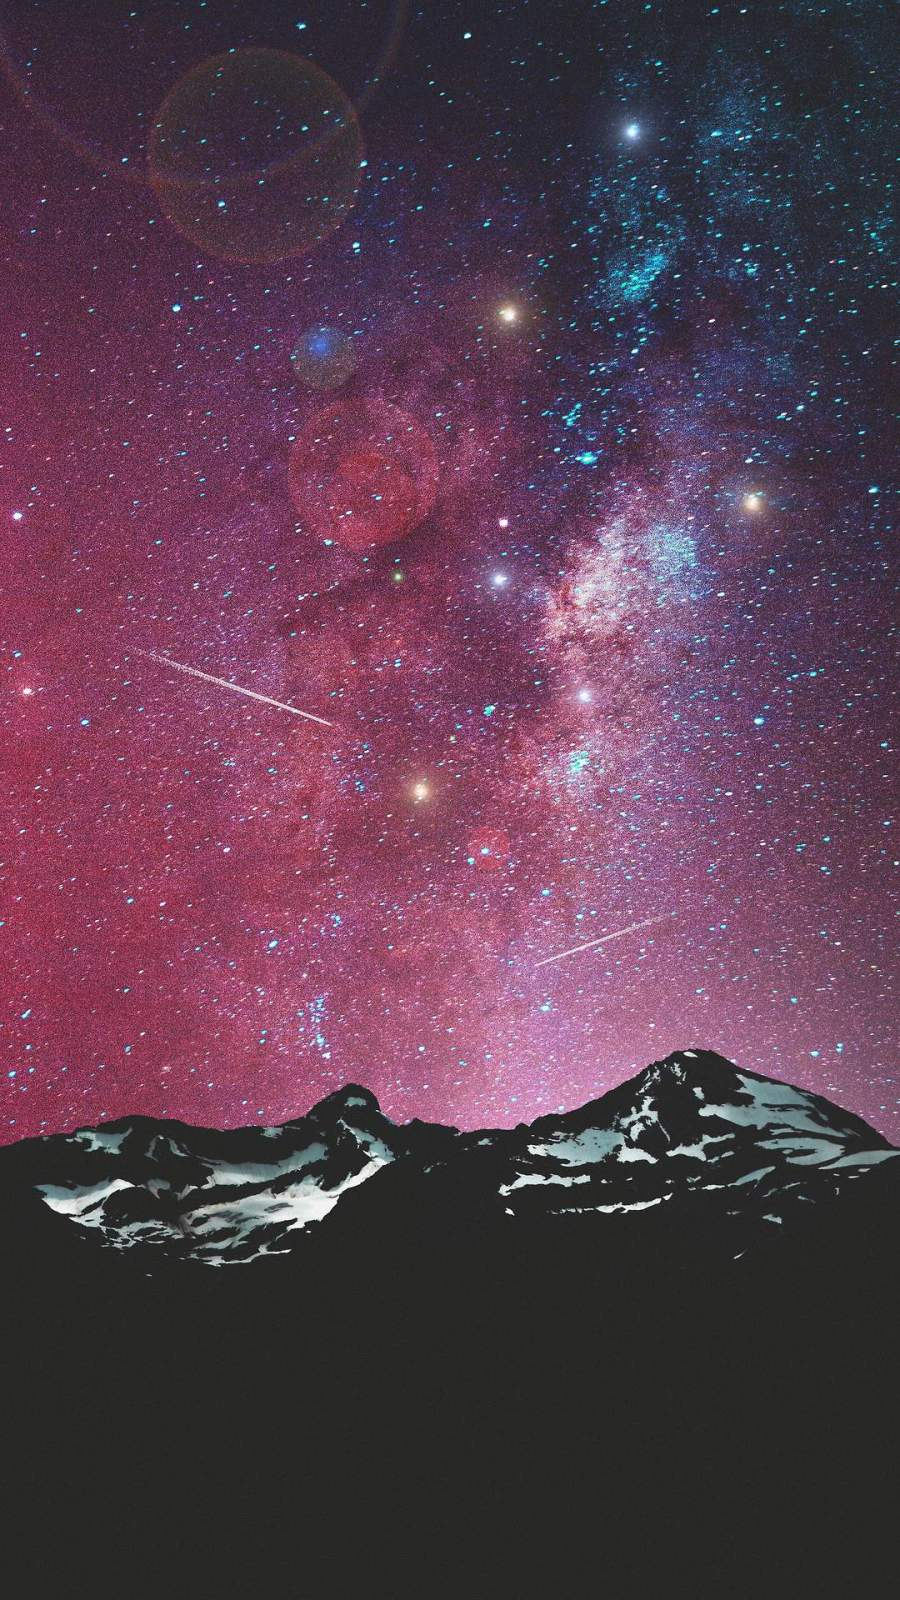 Night Sky Mountains Galaxy View Meteors iPhone Wallpaper